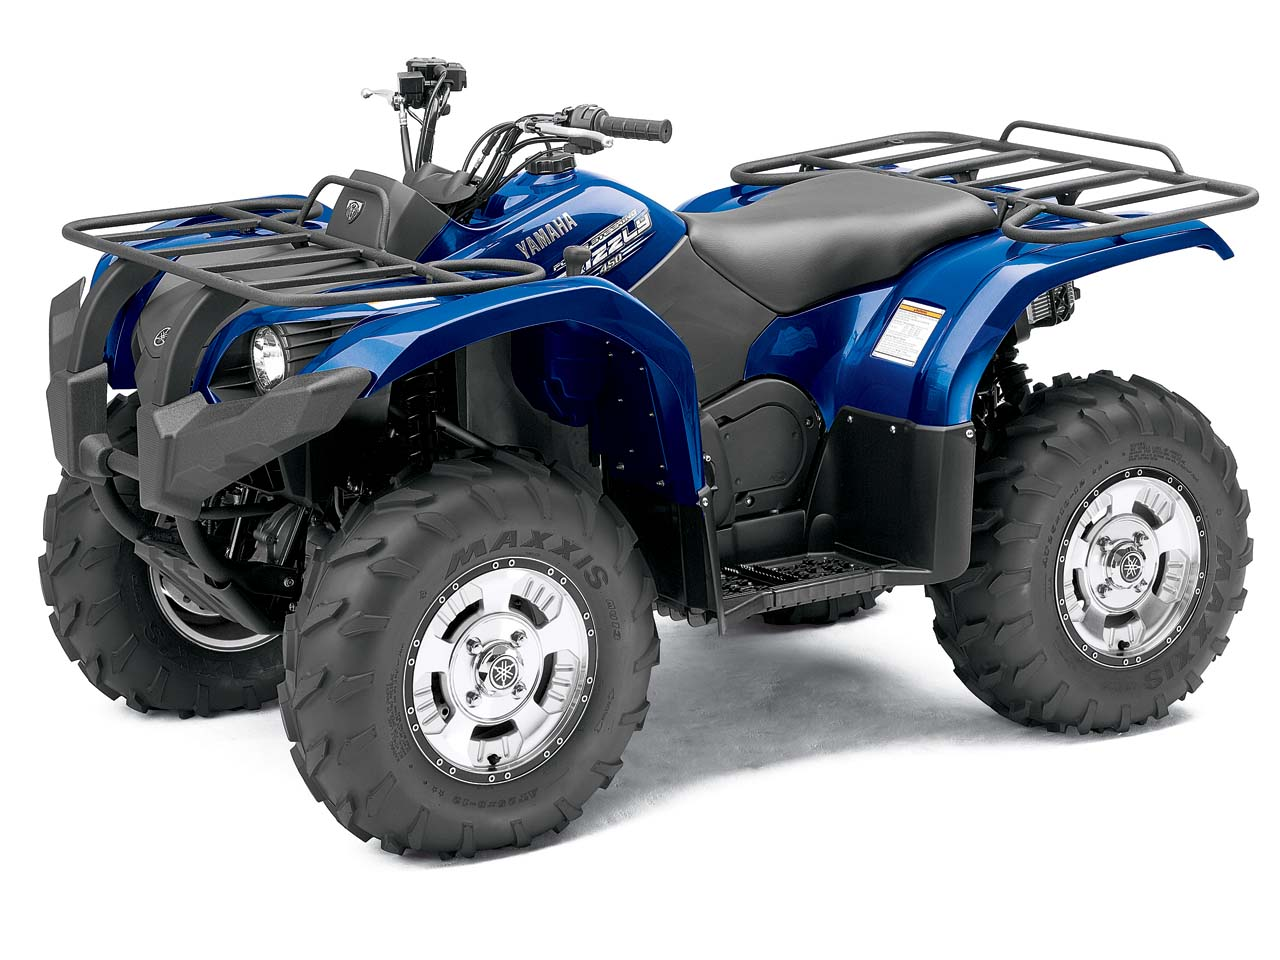 changes and new additions the 2011 yamaha atvs atv. Black Bedroom Furniture Sets. Home Design Ideas